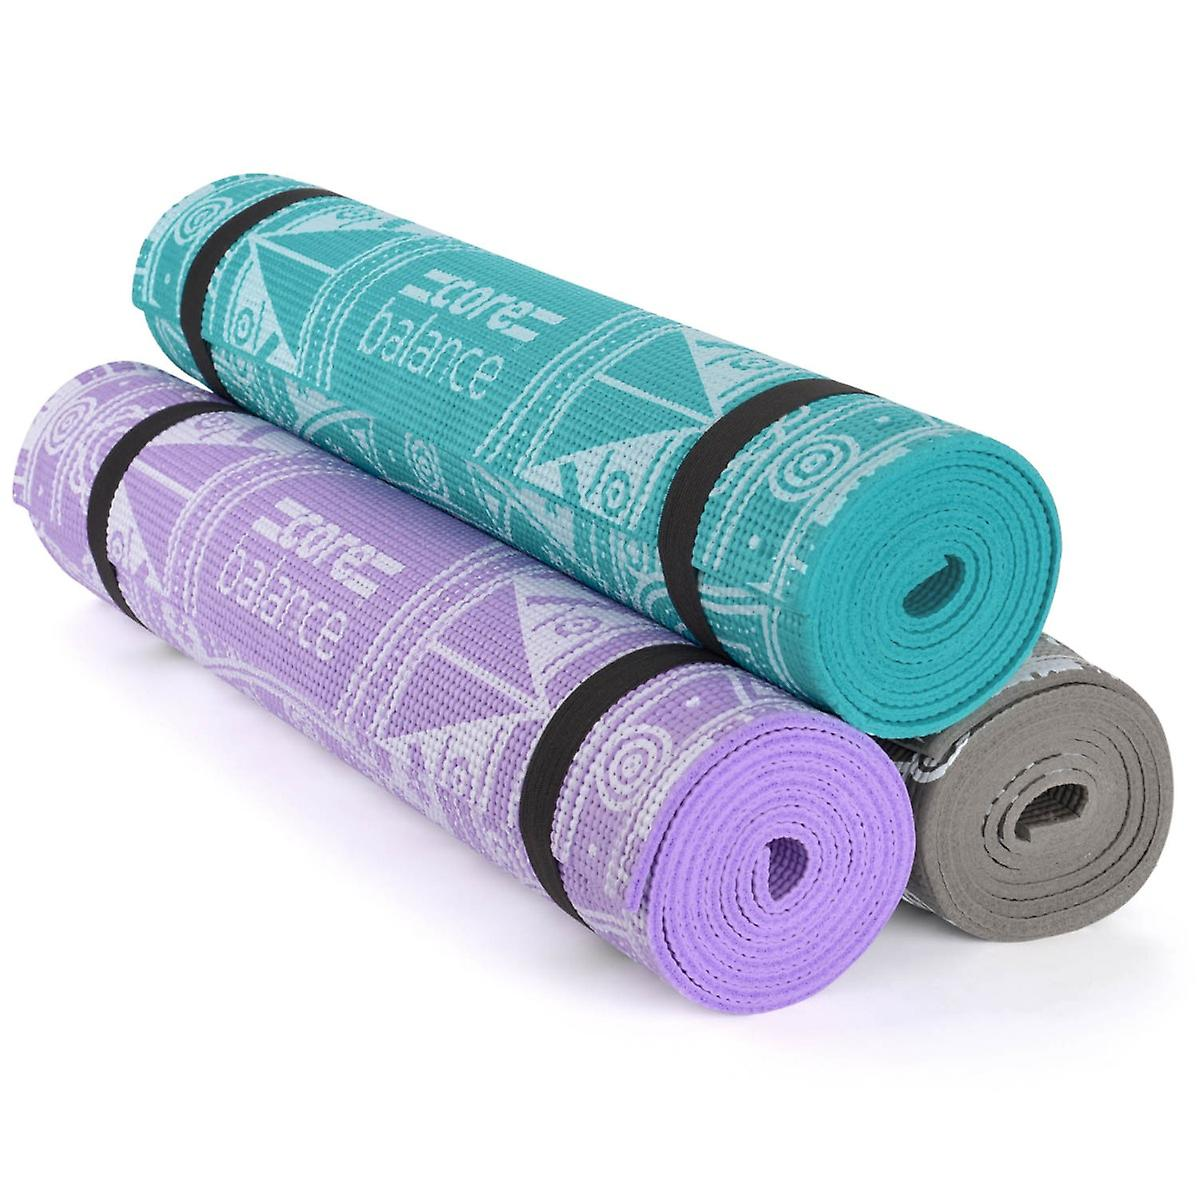 a9019d260e Roll Up Mandala Yoga Mat Pro Lightweight 6mm Foam Non Slip Pilates Gym  Physio